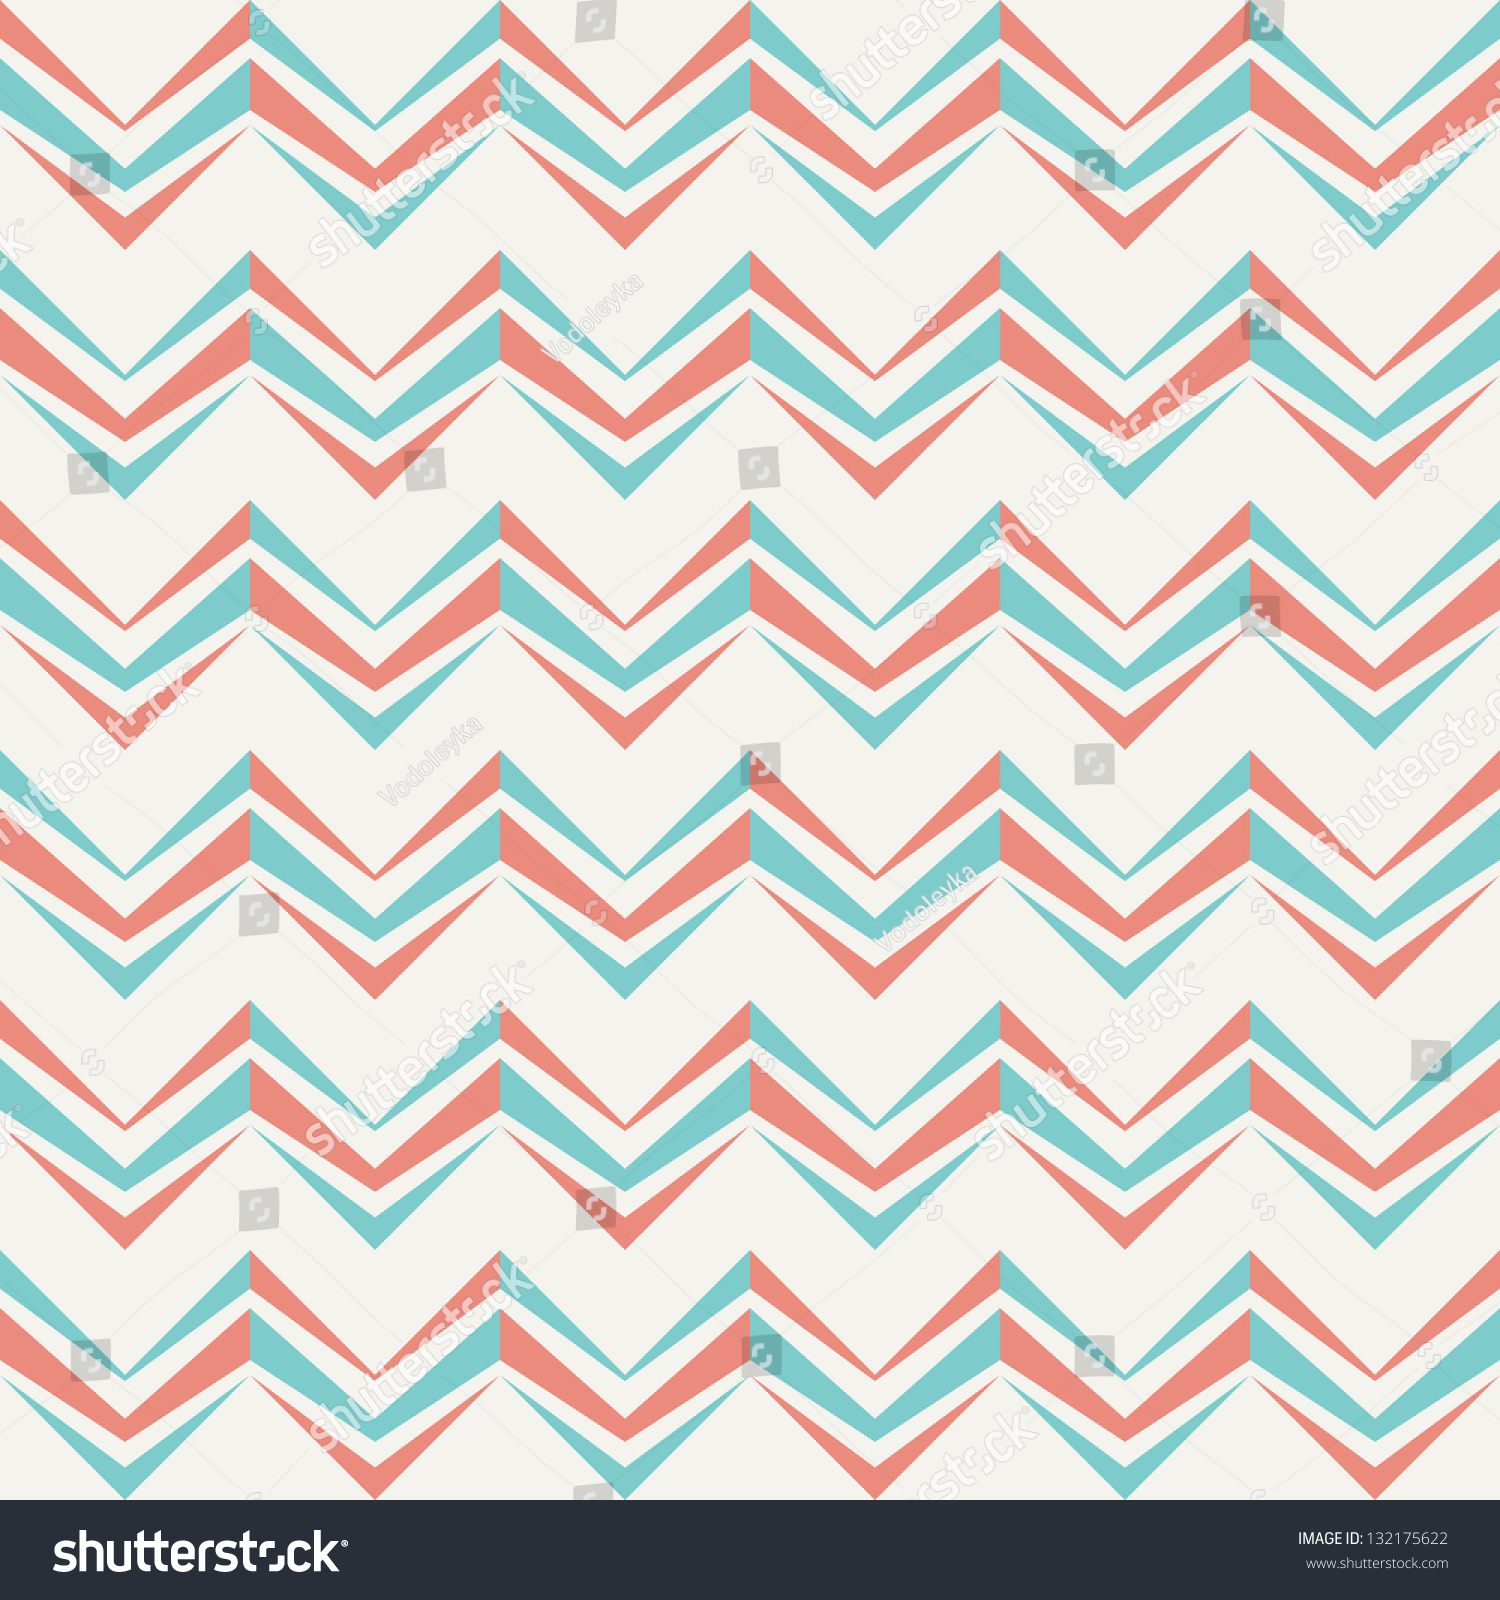 chevron style wallpaper - photo #21